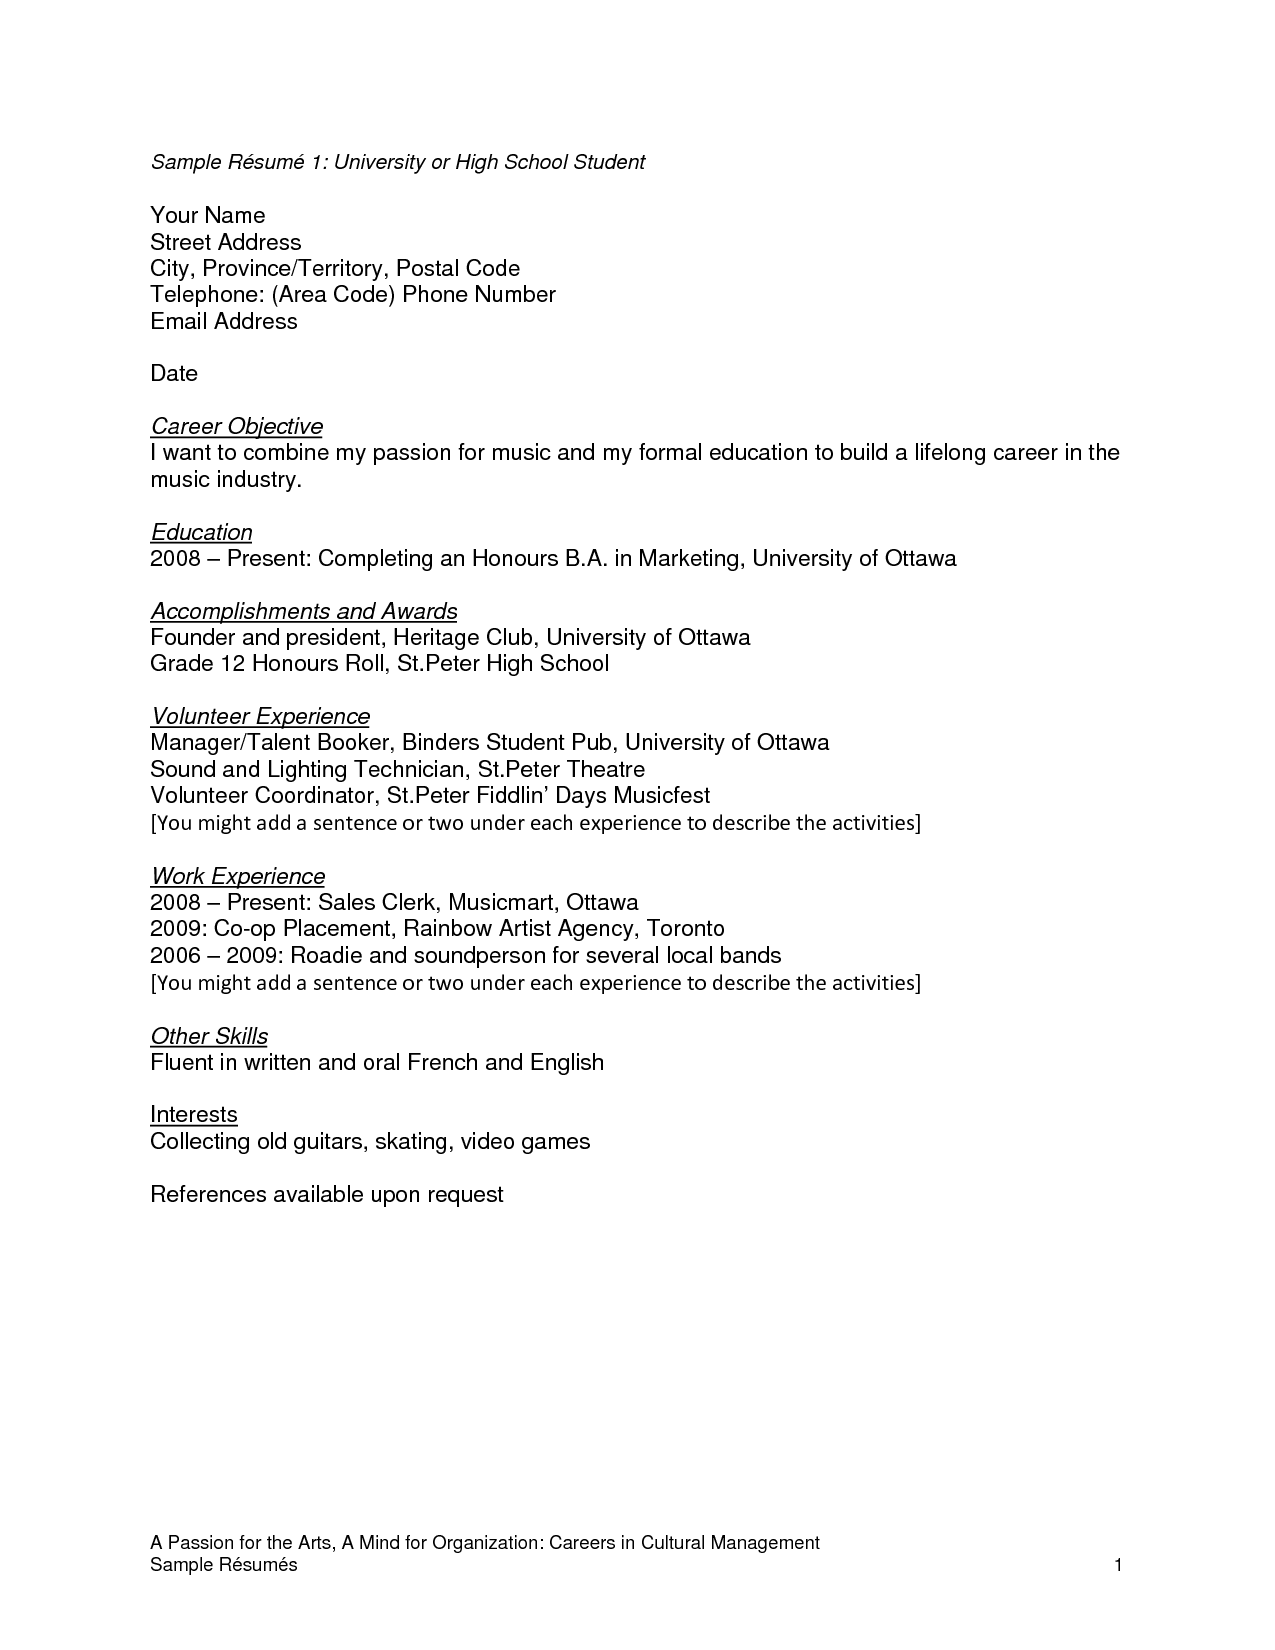 Sample High School Resumes Resume Samples For High School Students Flickr Photo